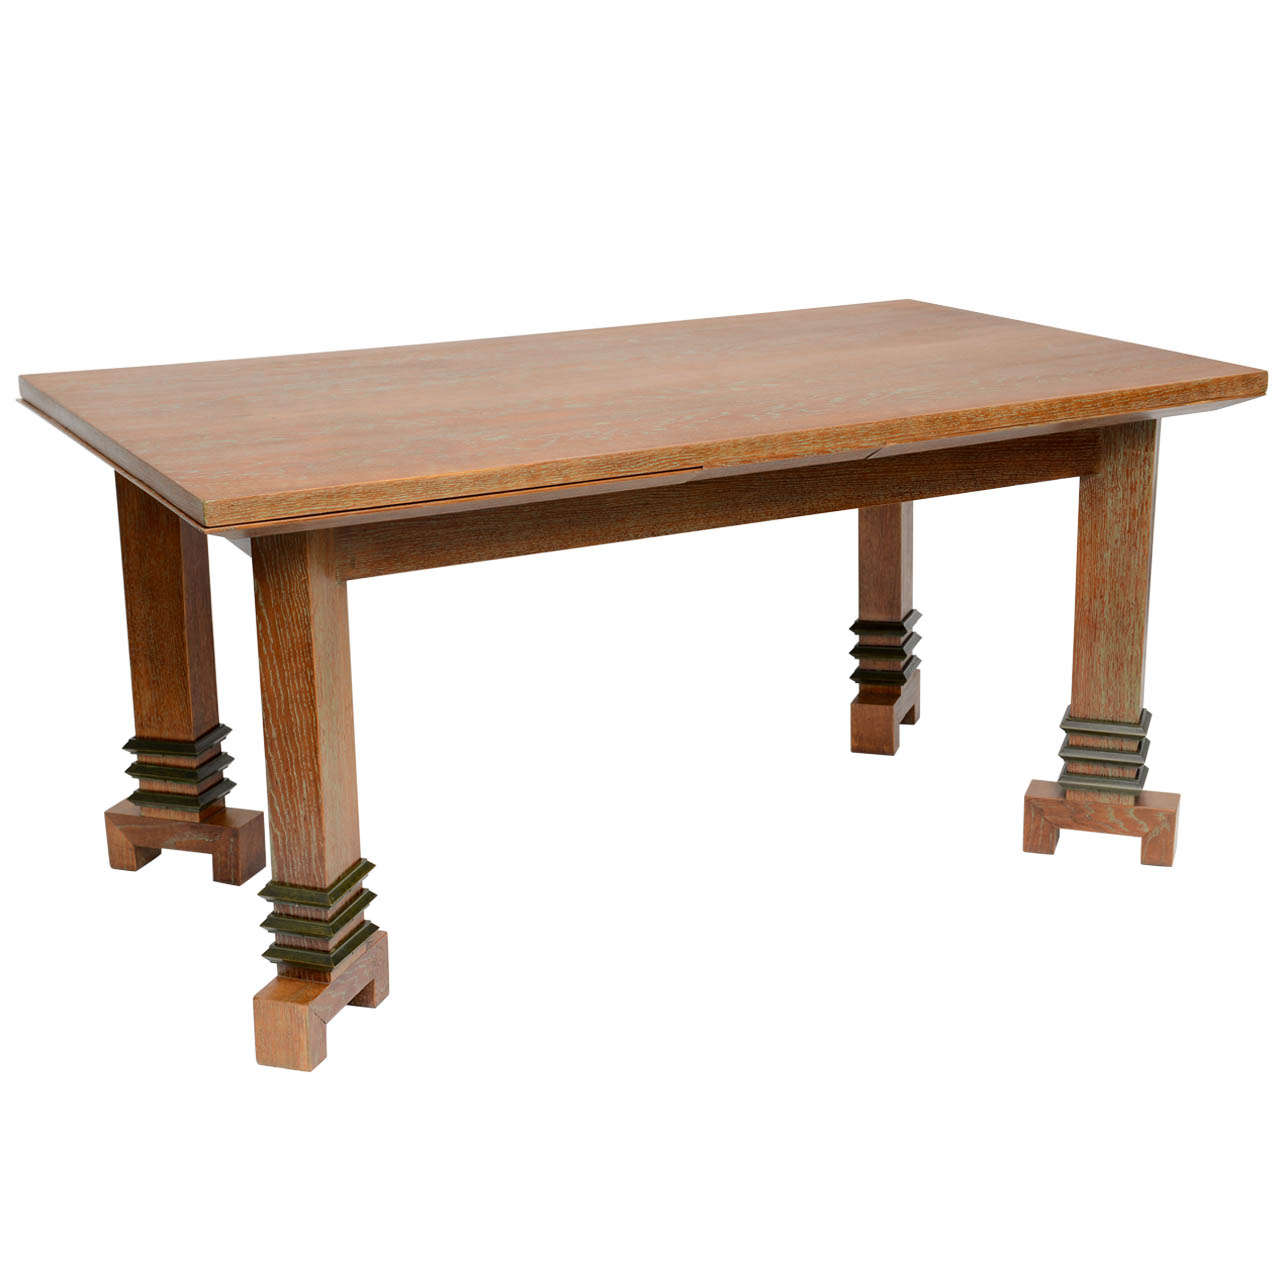 Art deco dining table by maurice jallot at 1stdibs - Art deco dining room table ...